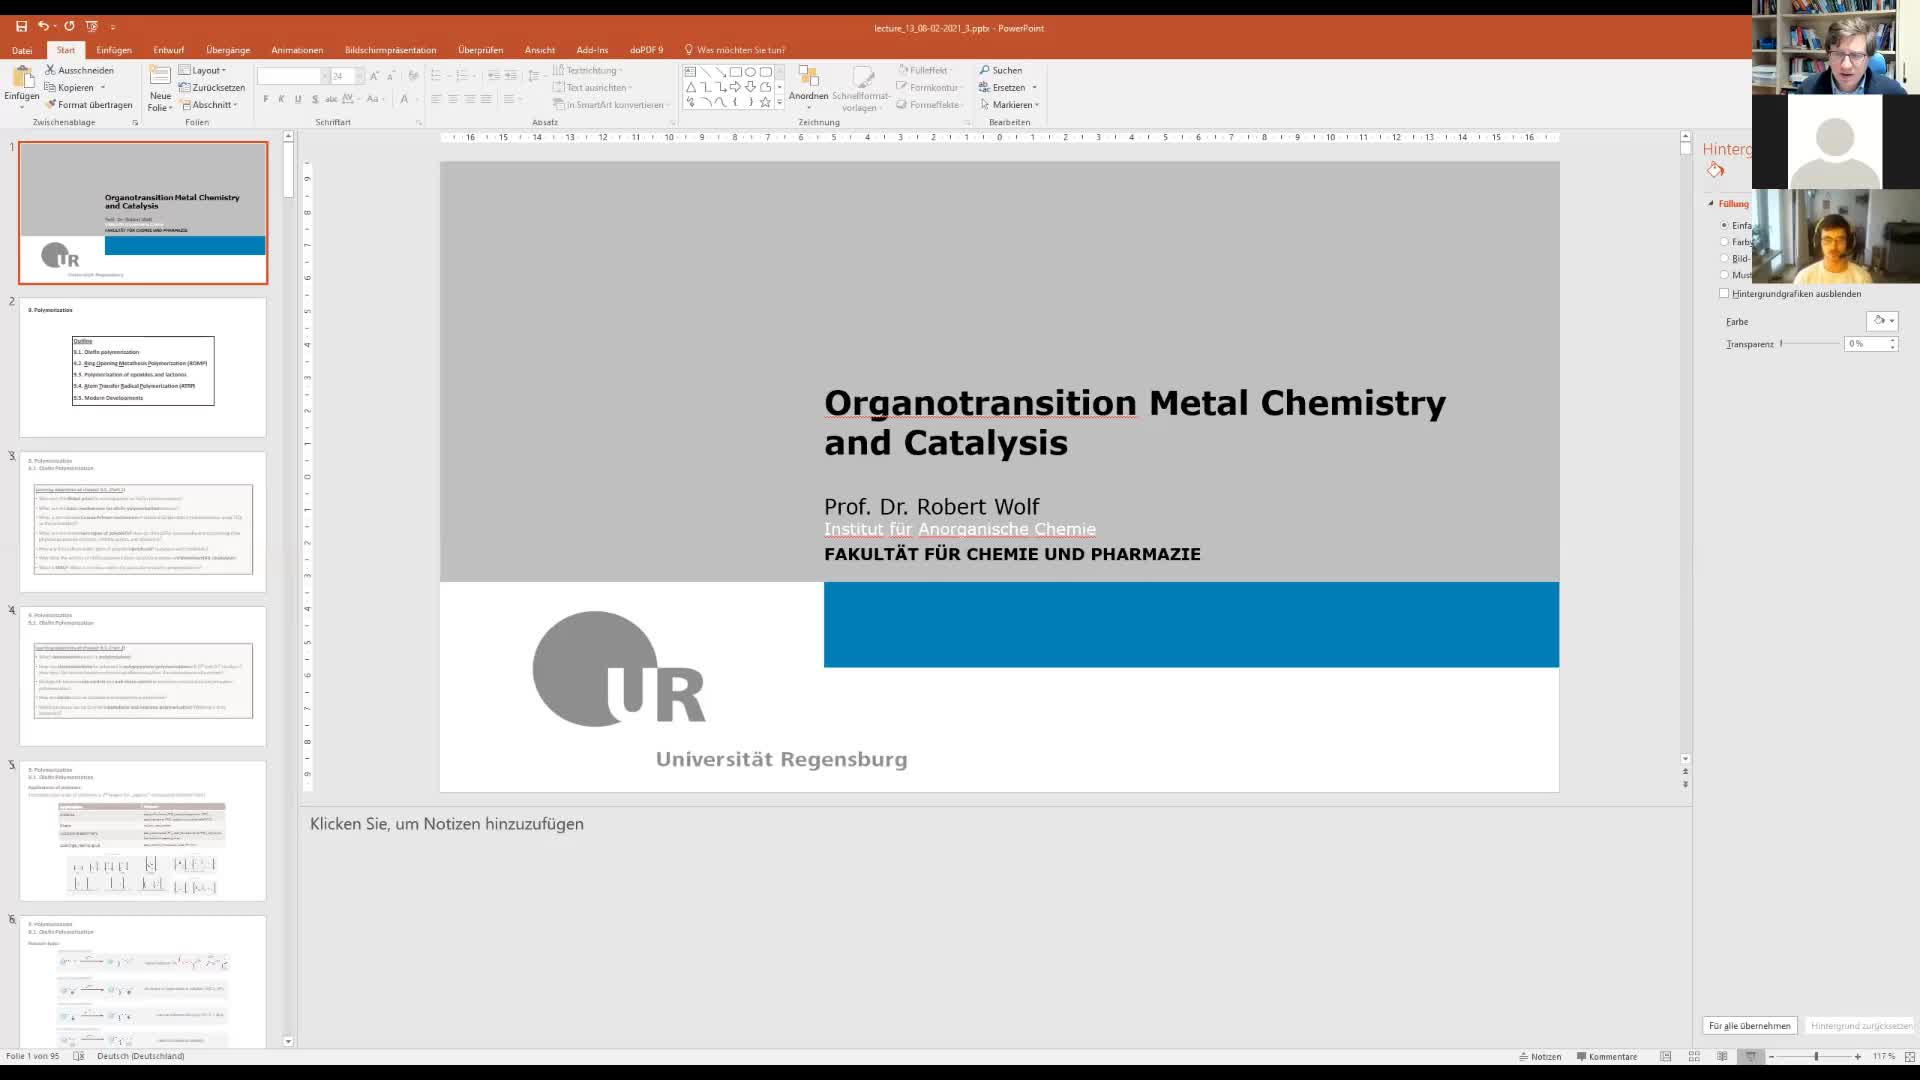 Organotransitionmetal Chemistry and Catalysis, lecture 13, 08/02/21